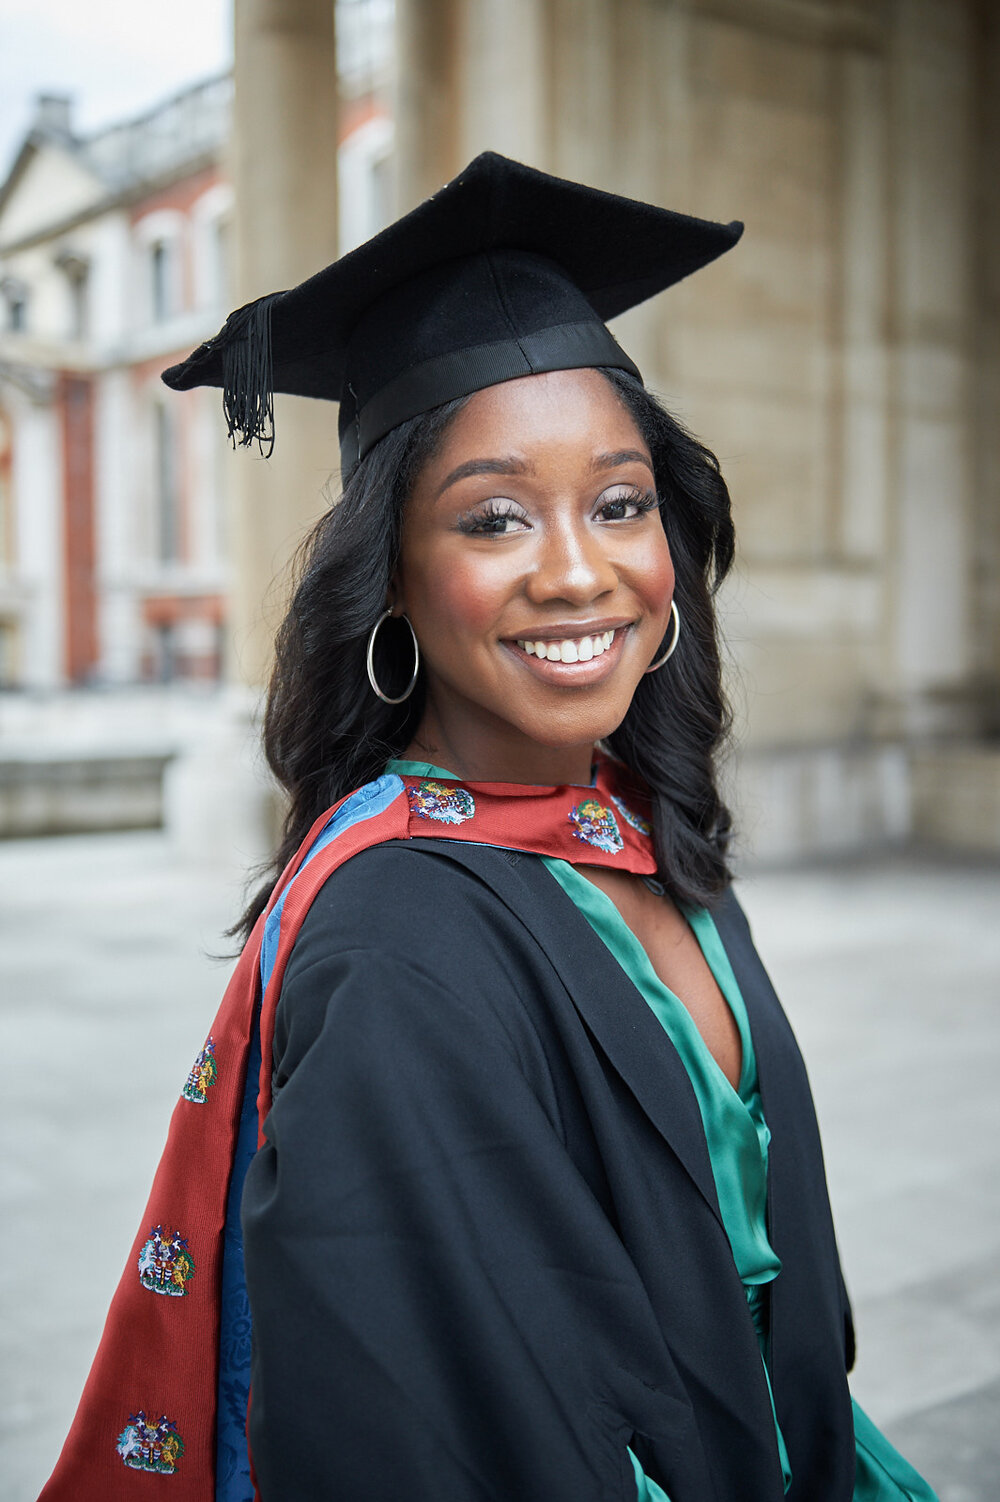 GRADUATION PHOTO SHOOT - SMALL PACKAGE   £150 or £125 (SE10 area)  30 minutes outdoor natural light photoshoot  5 high-resolution fully edited digital pictures of your choice